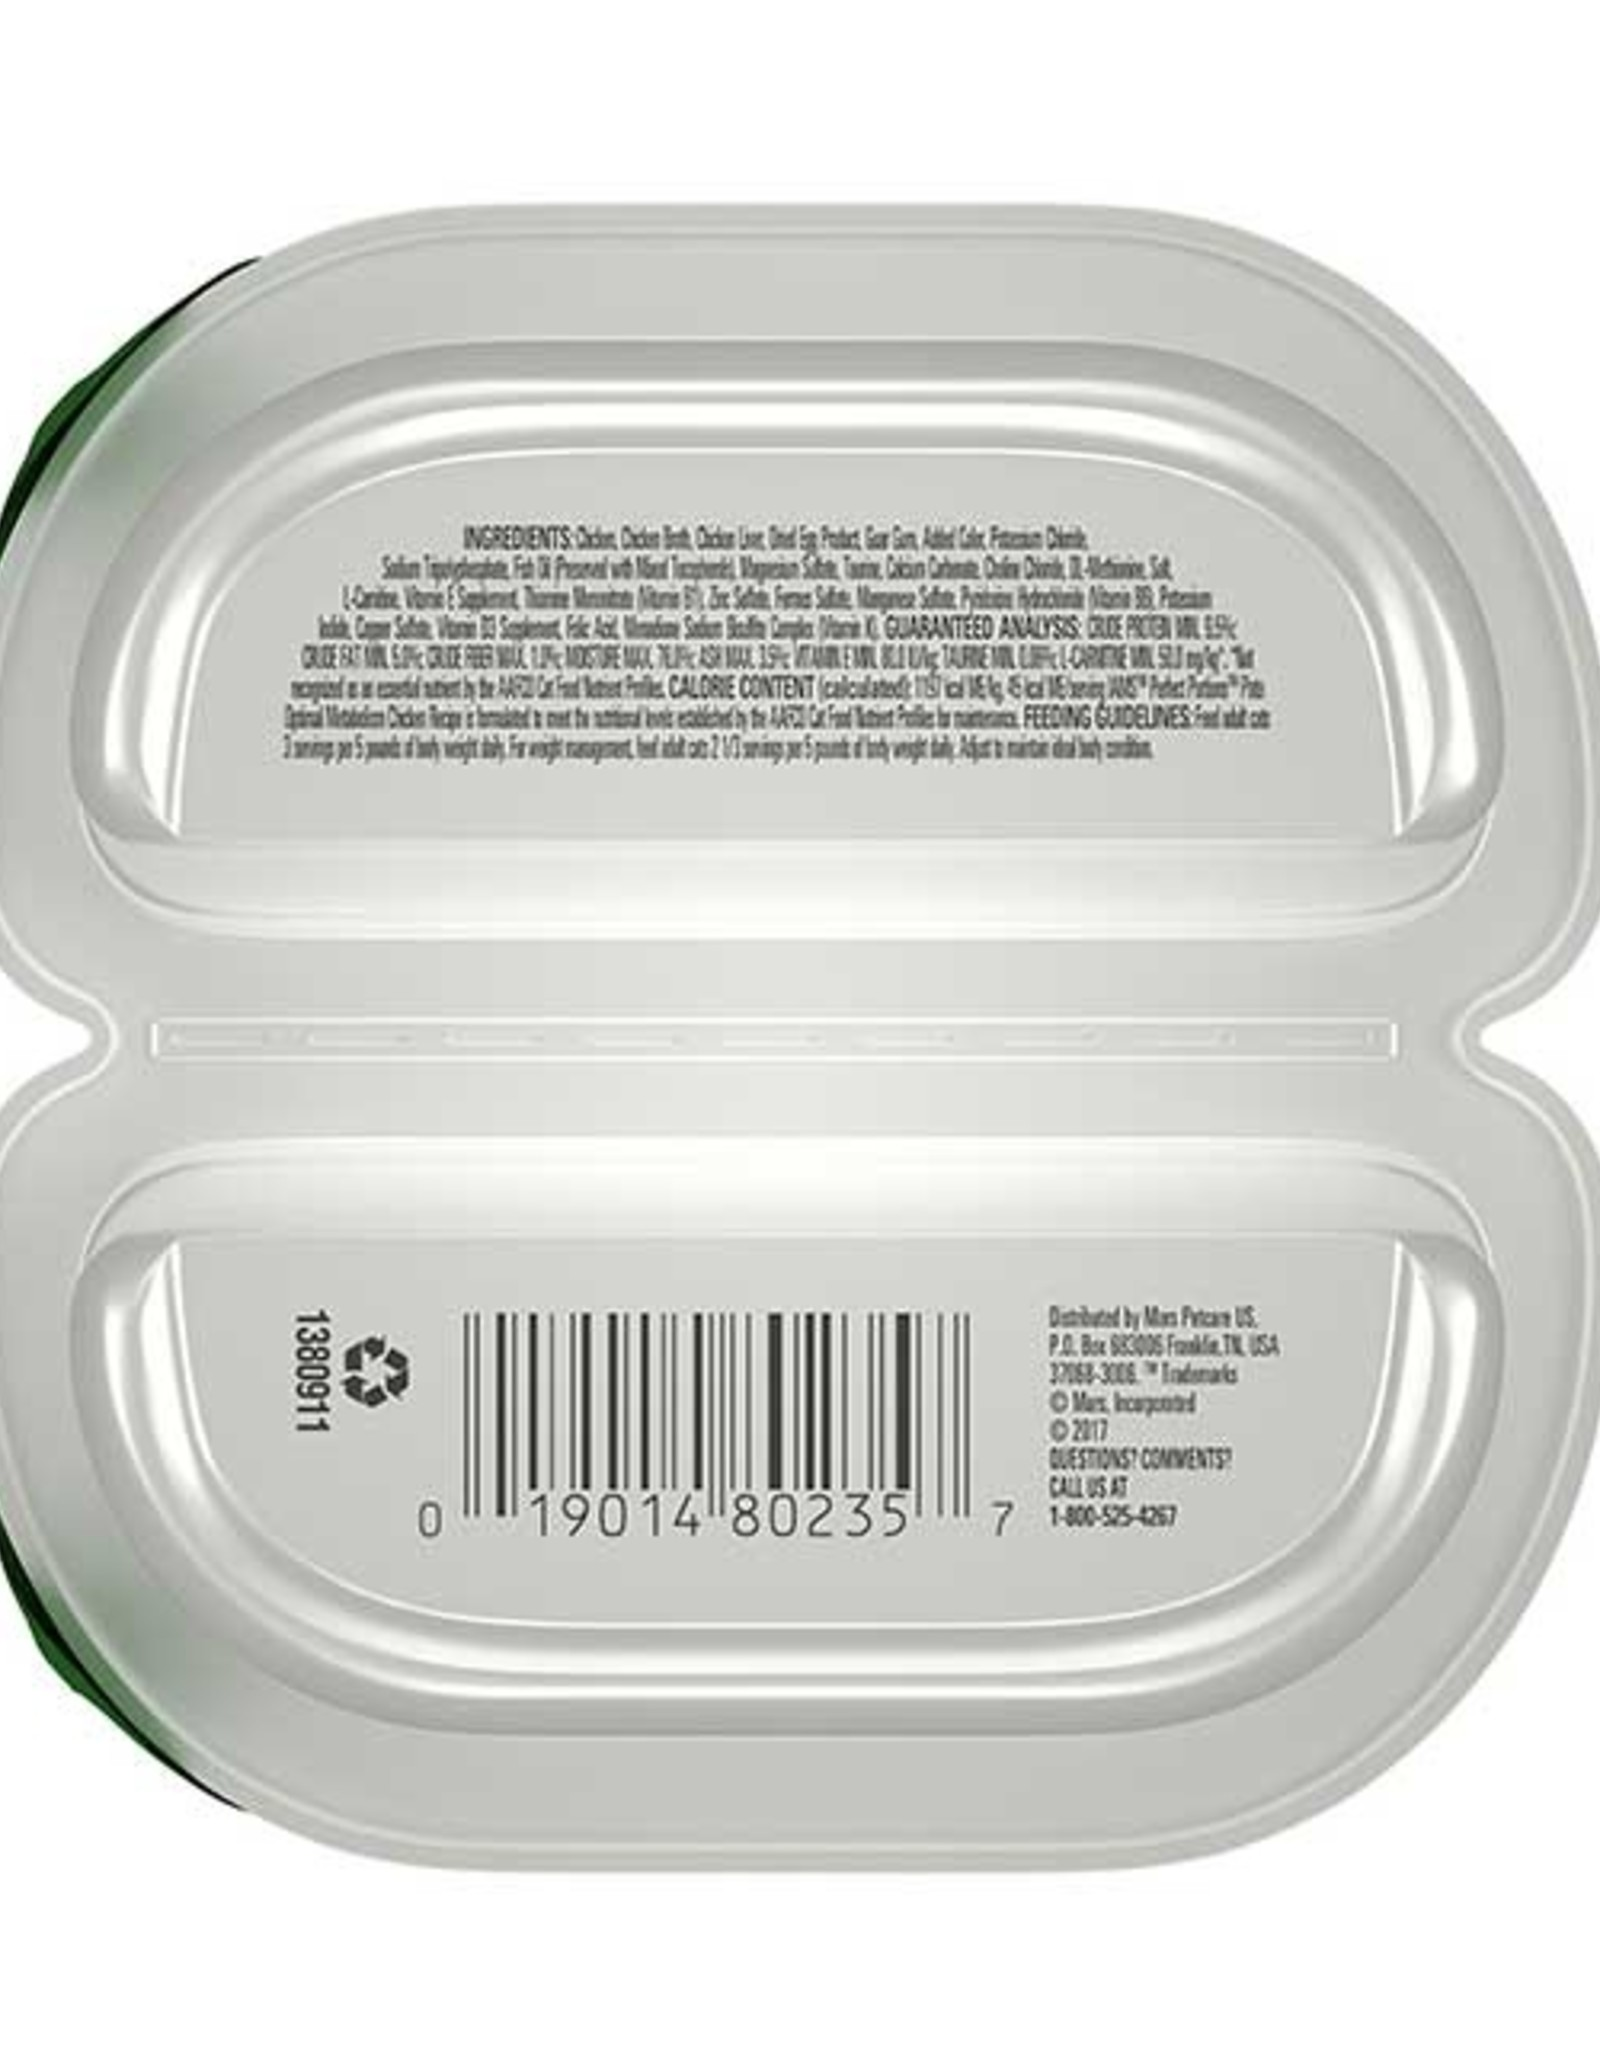 IAMS COMPANY IAMS CAT PERFECT PORTIONS OPTIMAL METABOLISM CHICKEN PATE 2.6OZ CASE OF 24